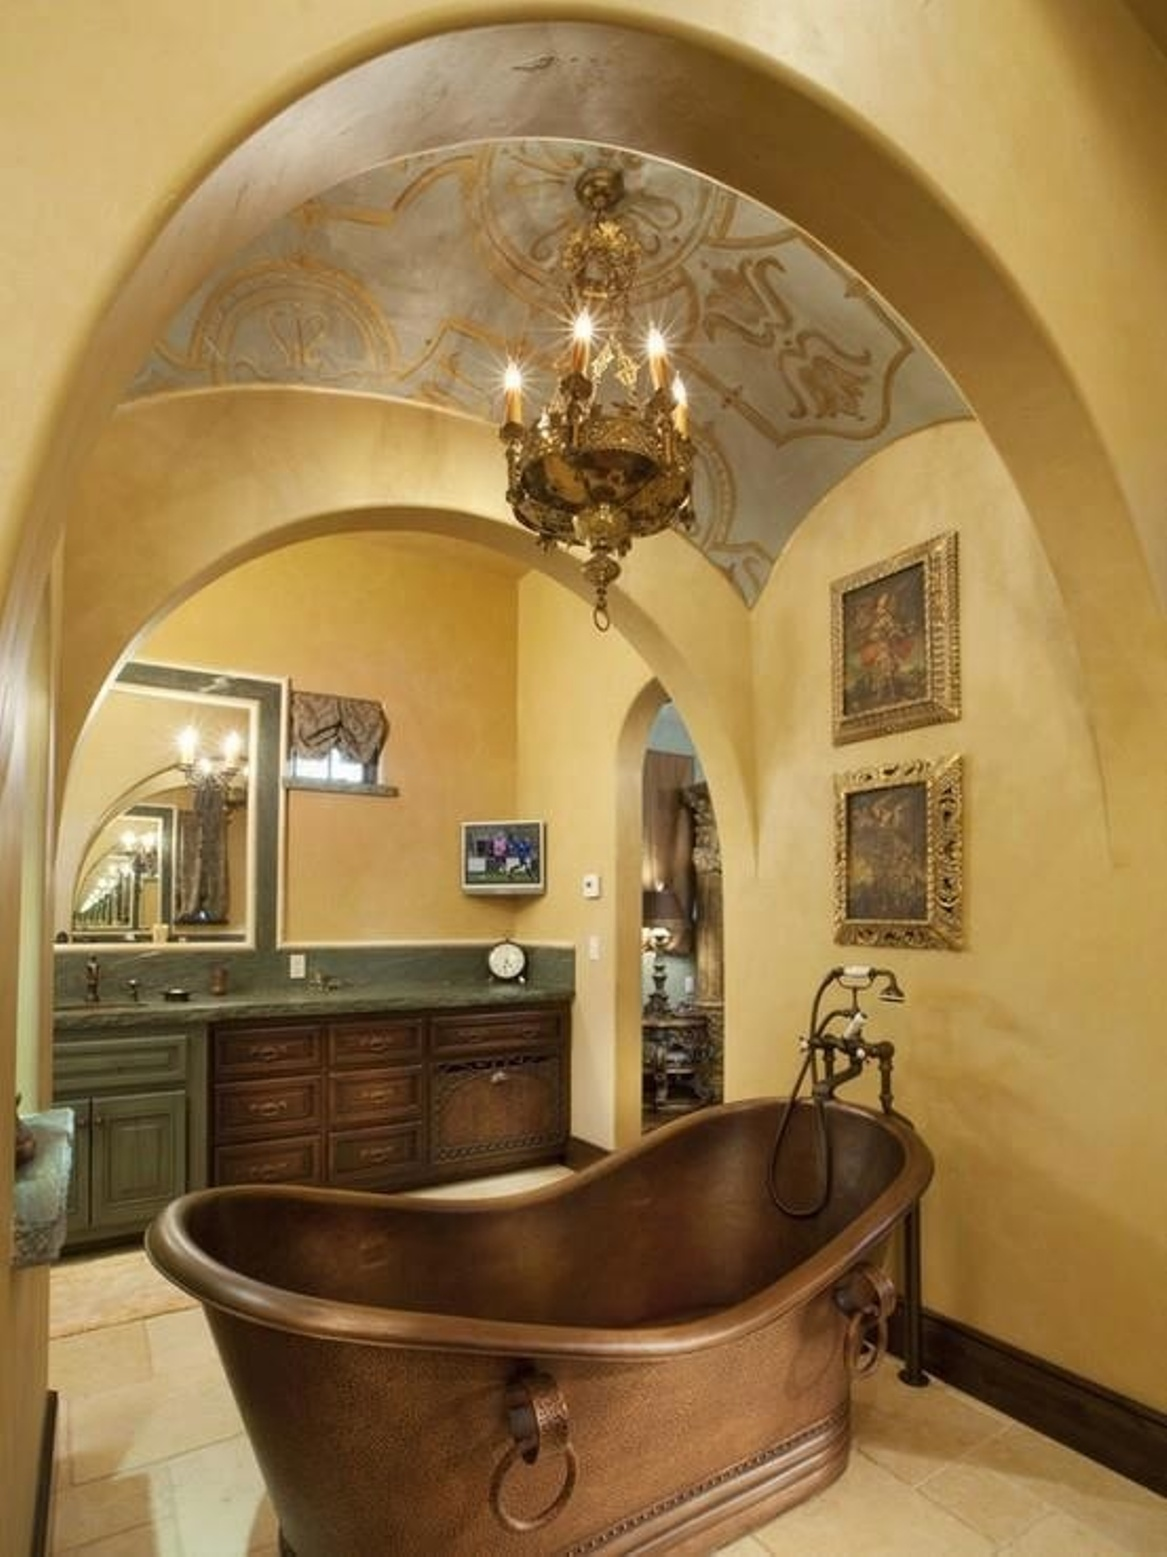 mediterranian-traditional-bathroom-designs-with-copper-bathtub-with-pedestal-sink-and-traditional-vanity